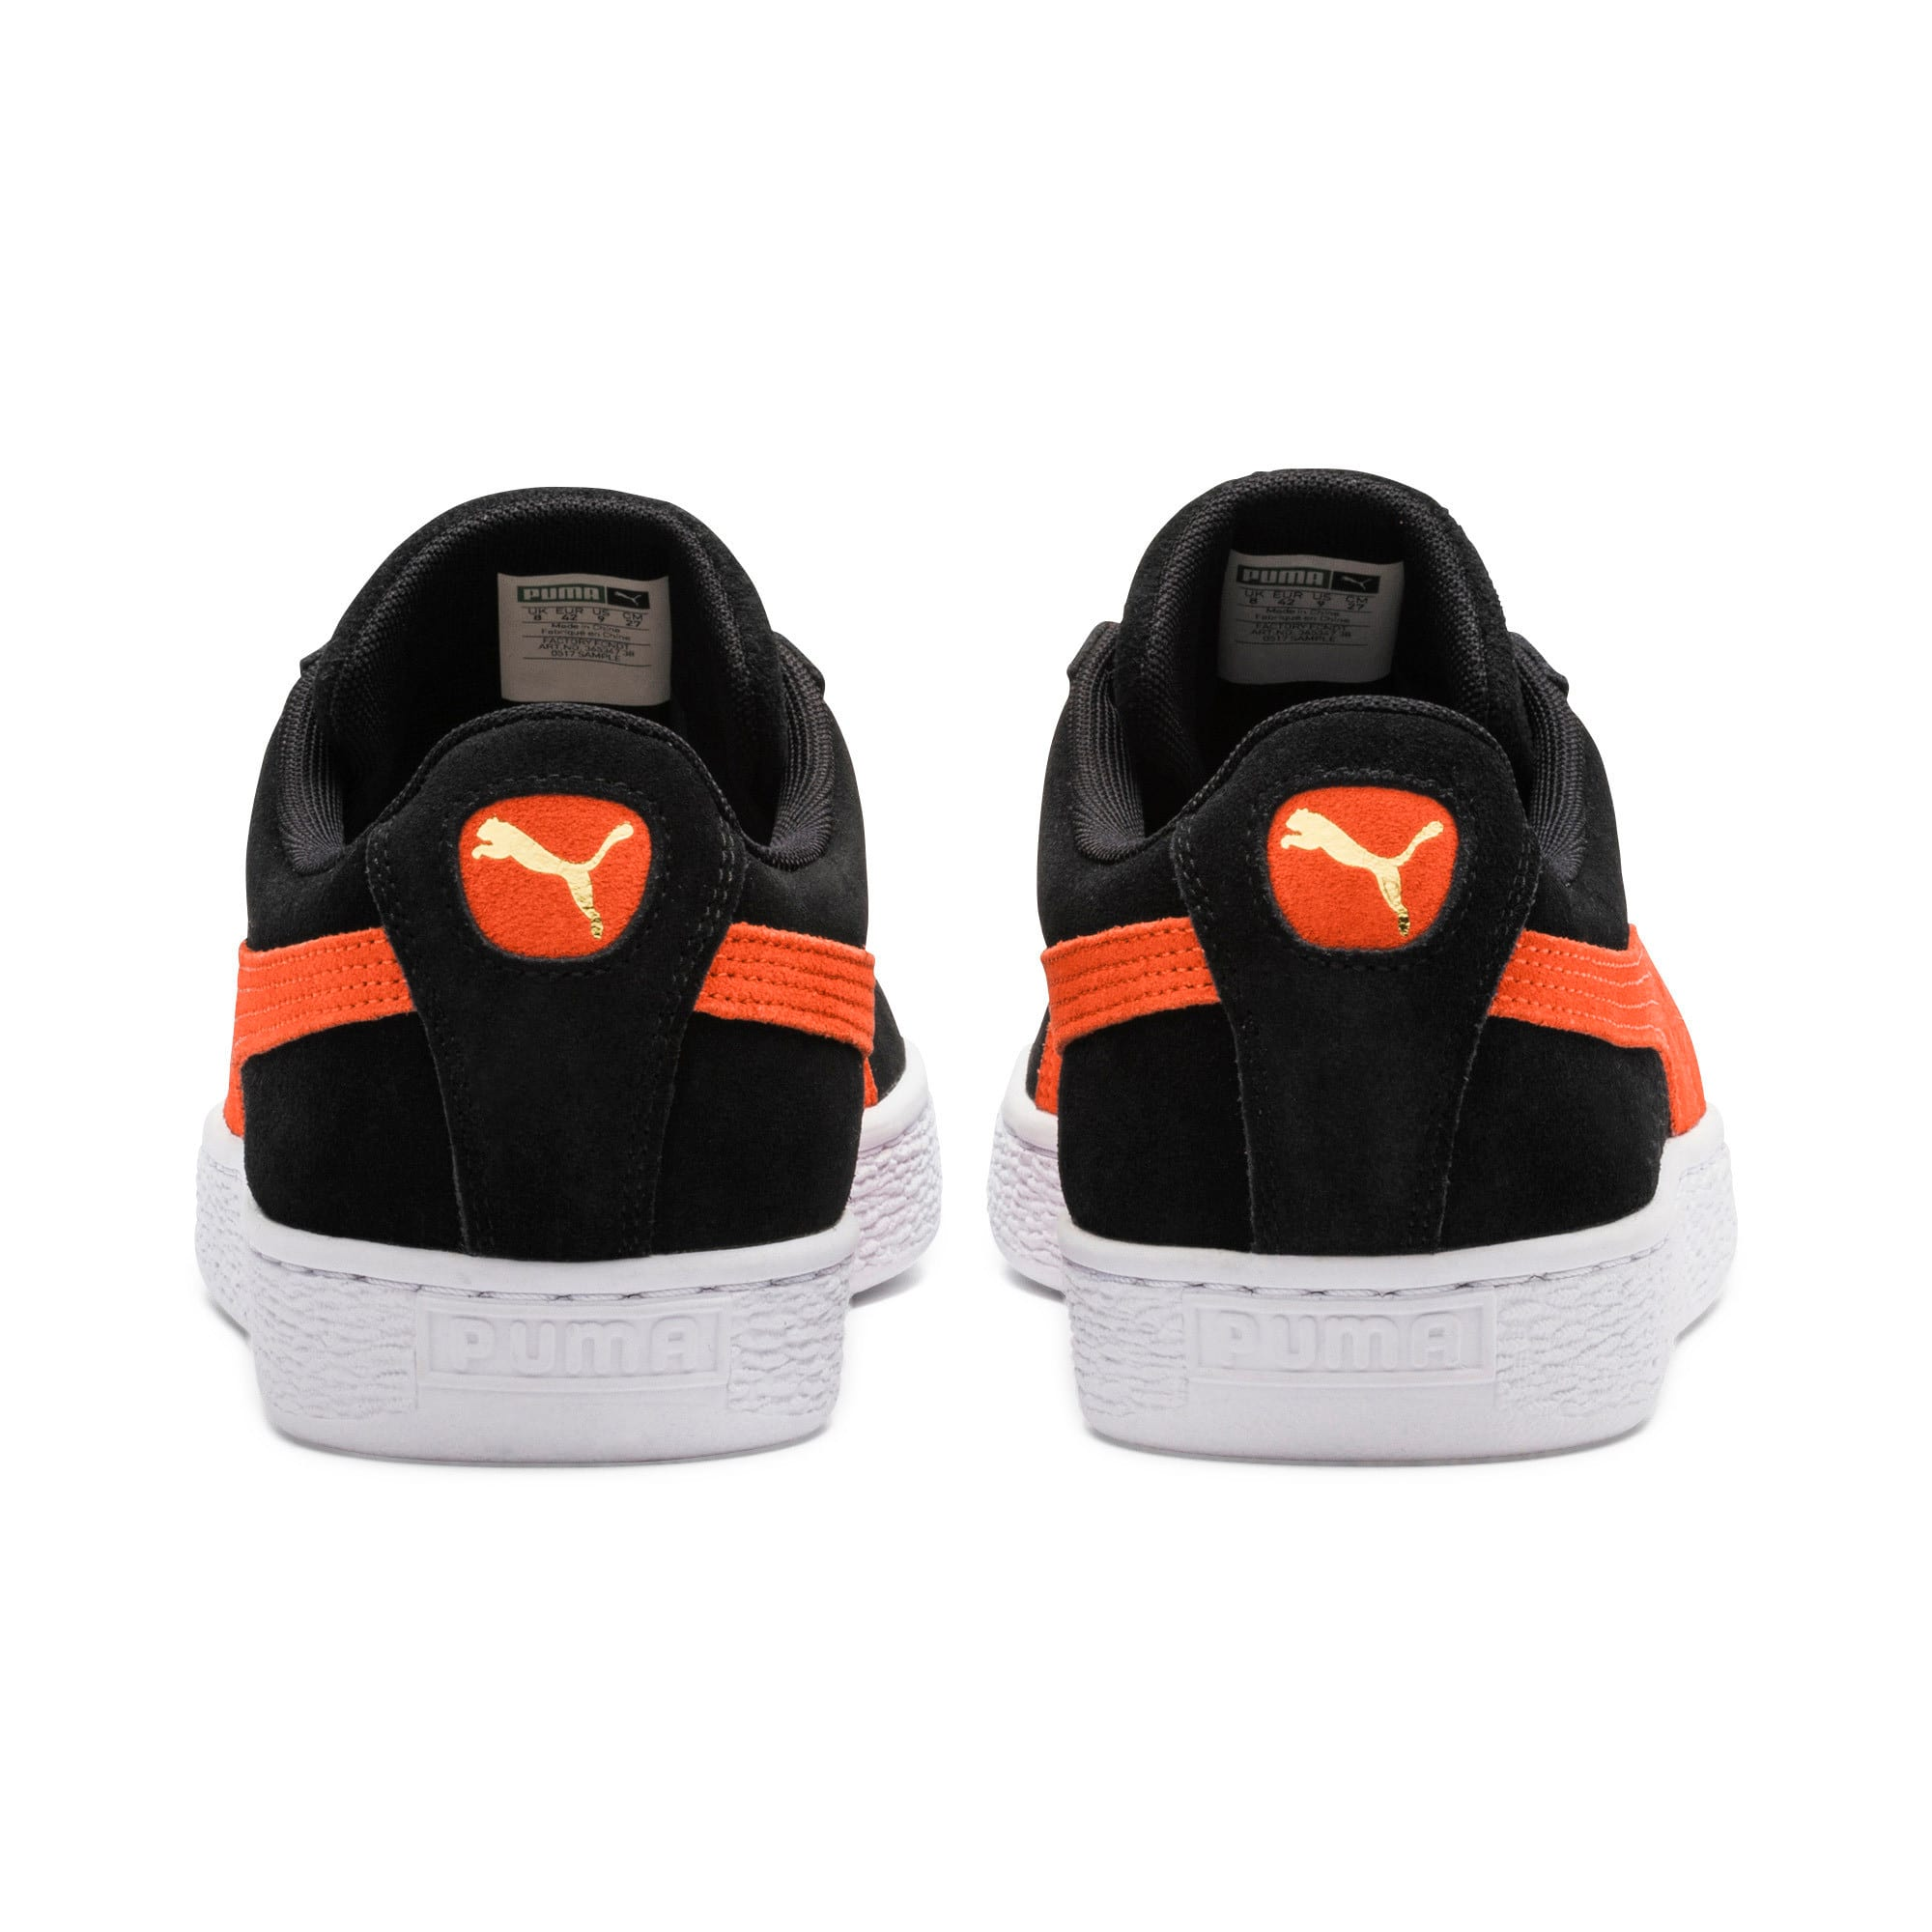 Thumbnail 4 of Suede Classic Trainers, Black-Firecracker- White, medium-IND